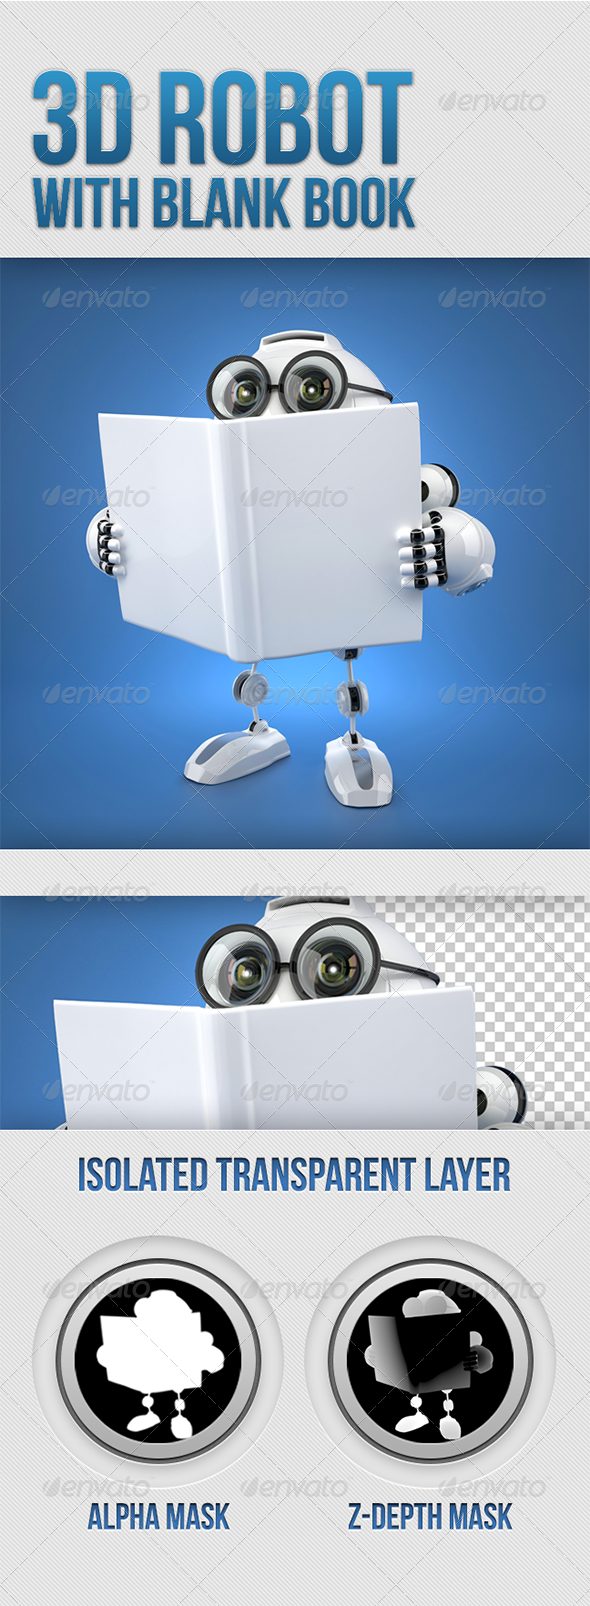 GraphicRiver 3D Robot reading a book with blank cover 5282940